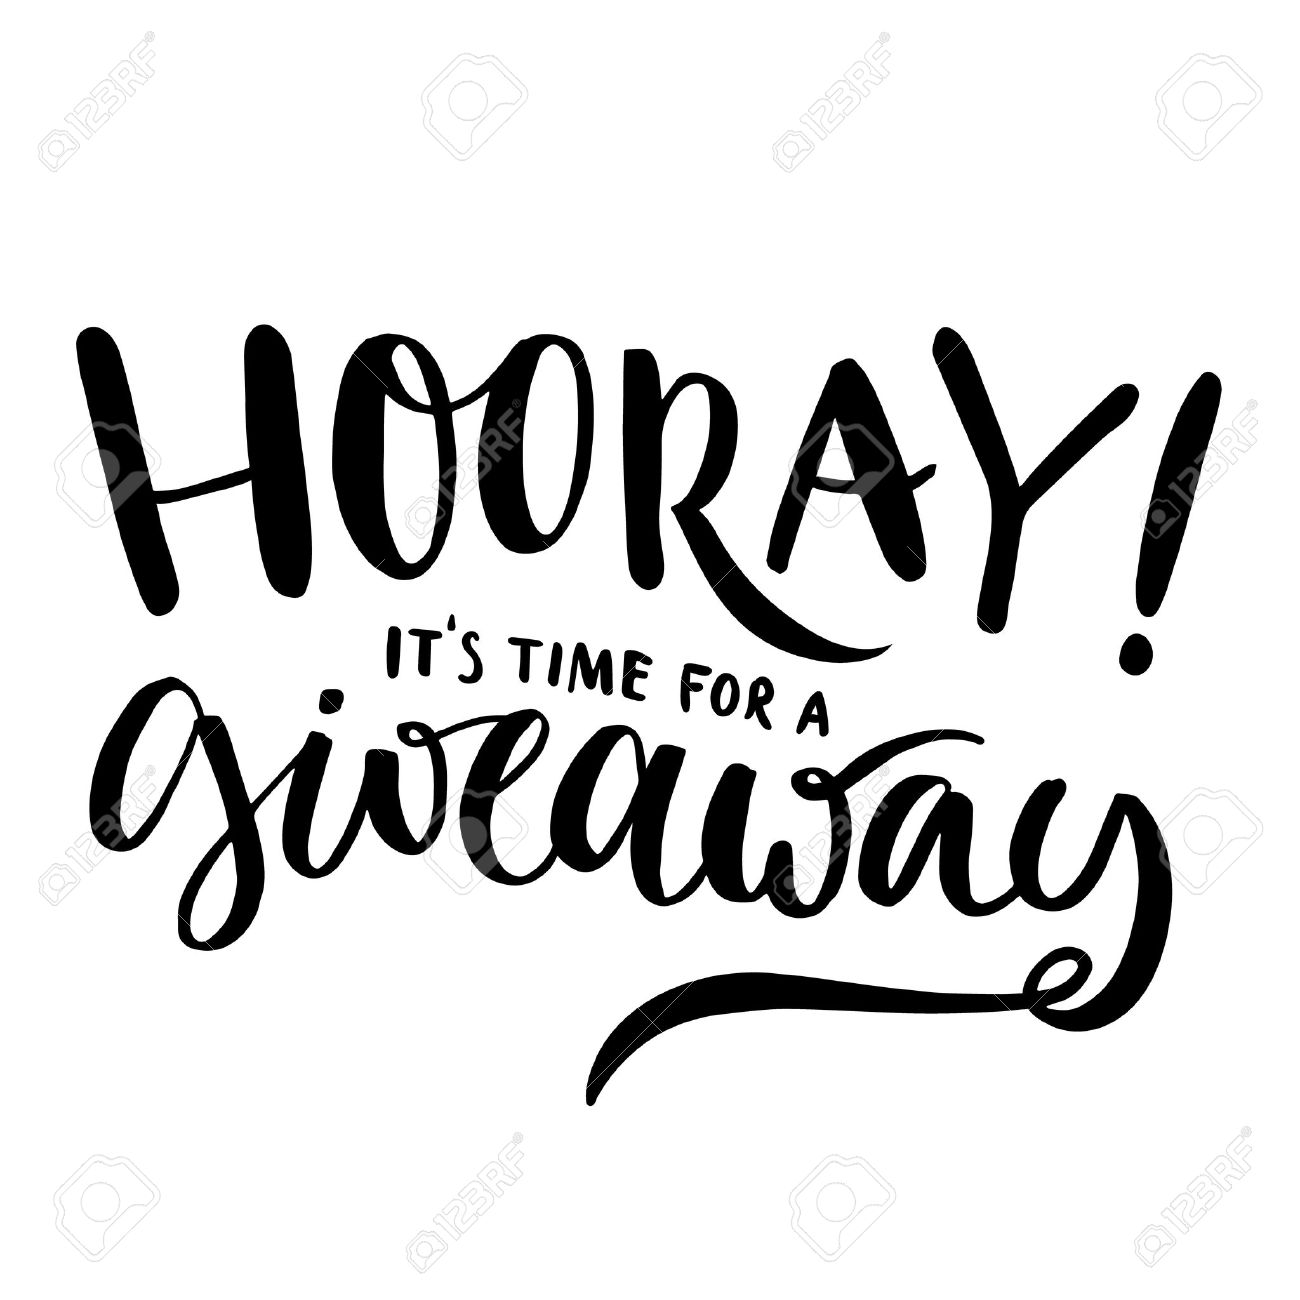 hooray it s time for giveaway promo banner for social media